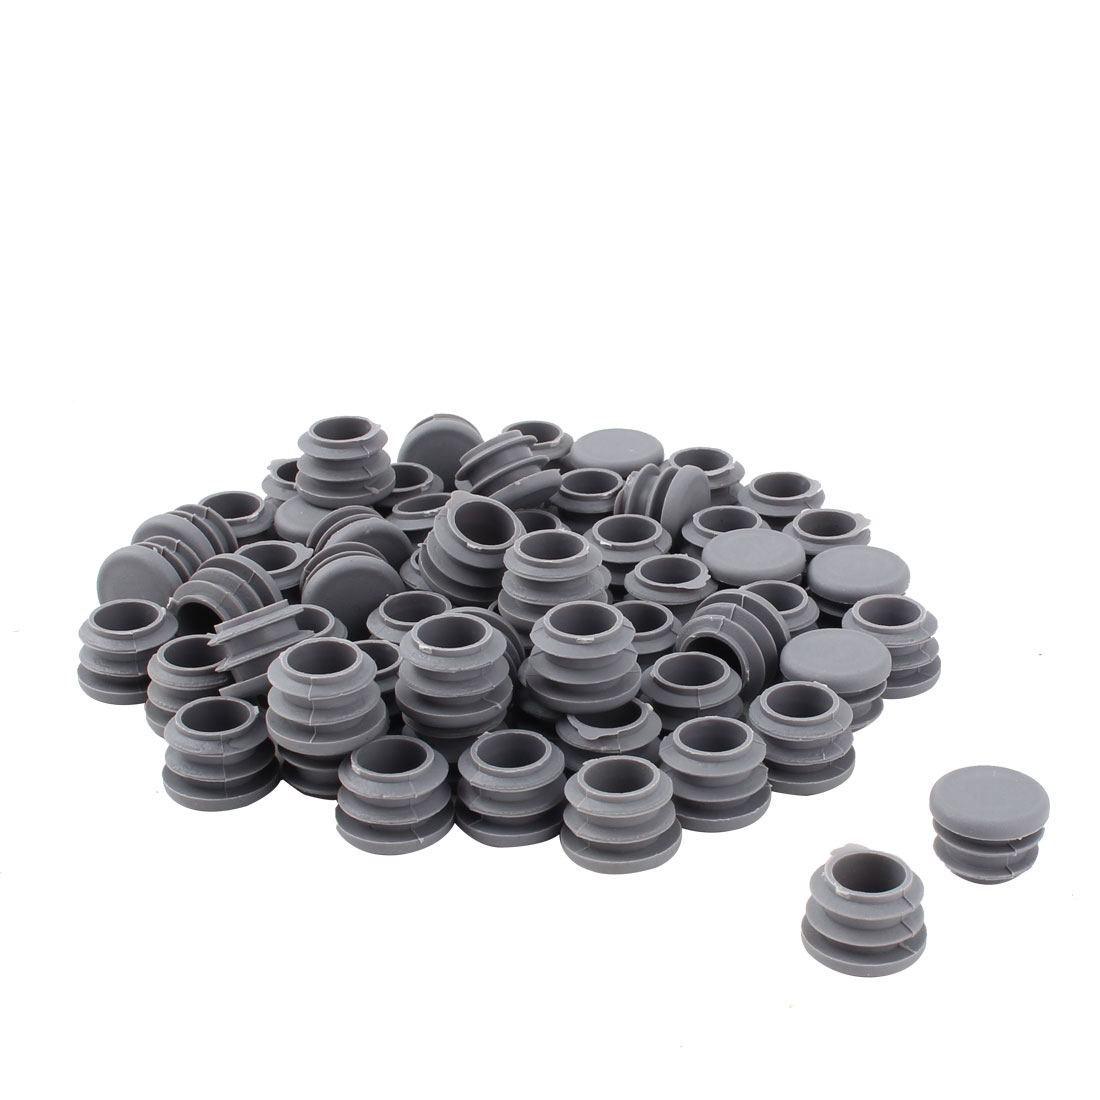 Furniture Table Chair Plastic Round Tube Pipe Insert Cover Protector Gray 19mm Dia 50pcs